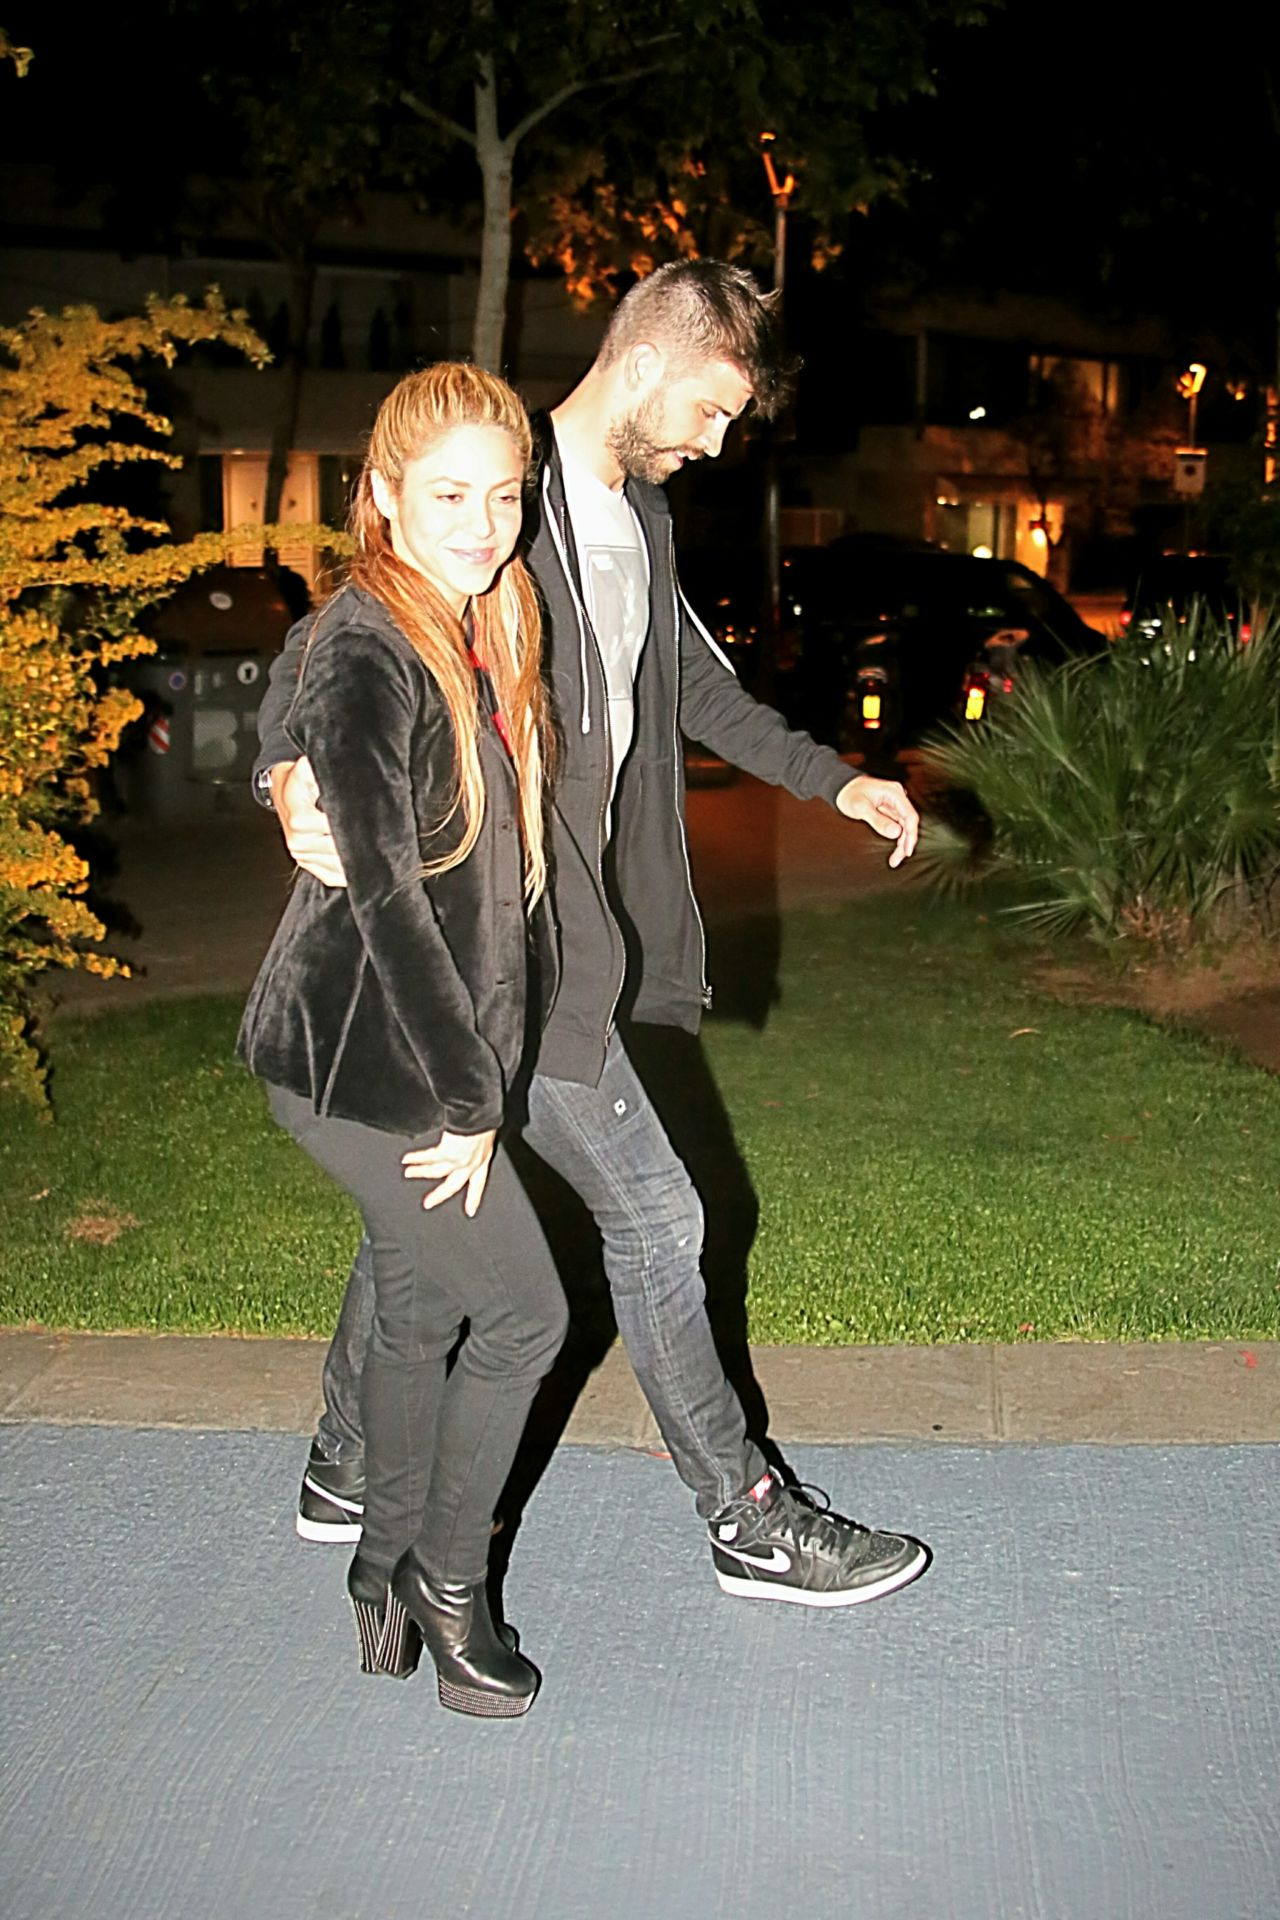 shakira-and-gerard-pique-our-to-dinner-in-barcelona-05-06-2018-5.jpg